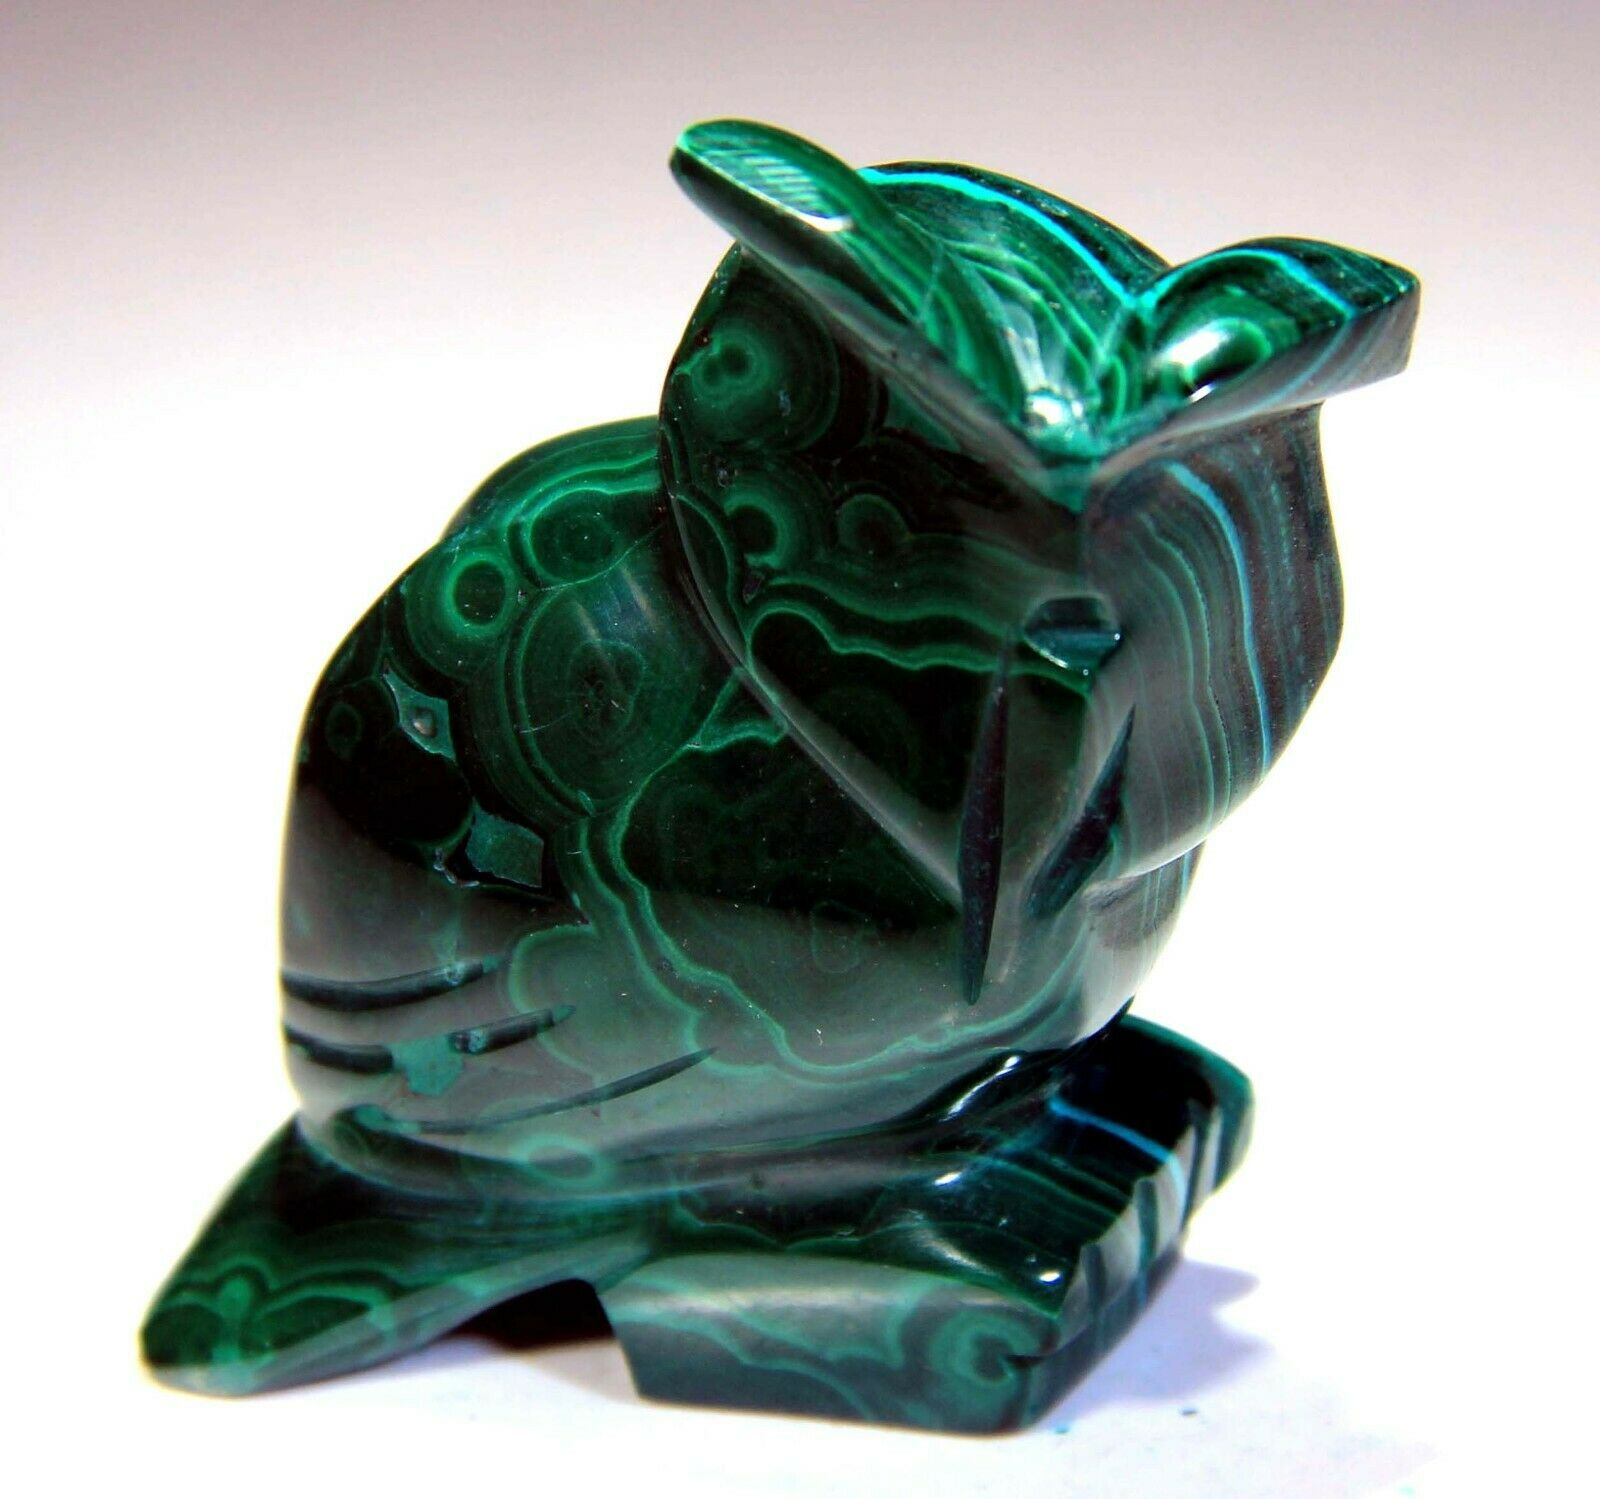 2.25 Top Quality Owl, Natural Malachite Hand Carving SC278 - $10.50